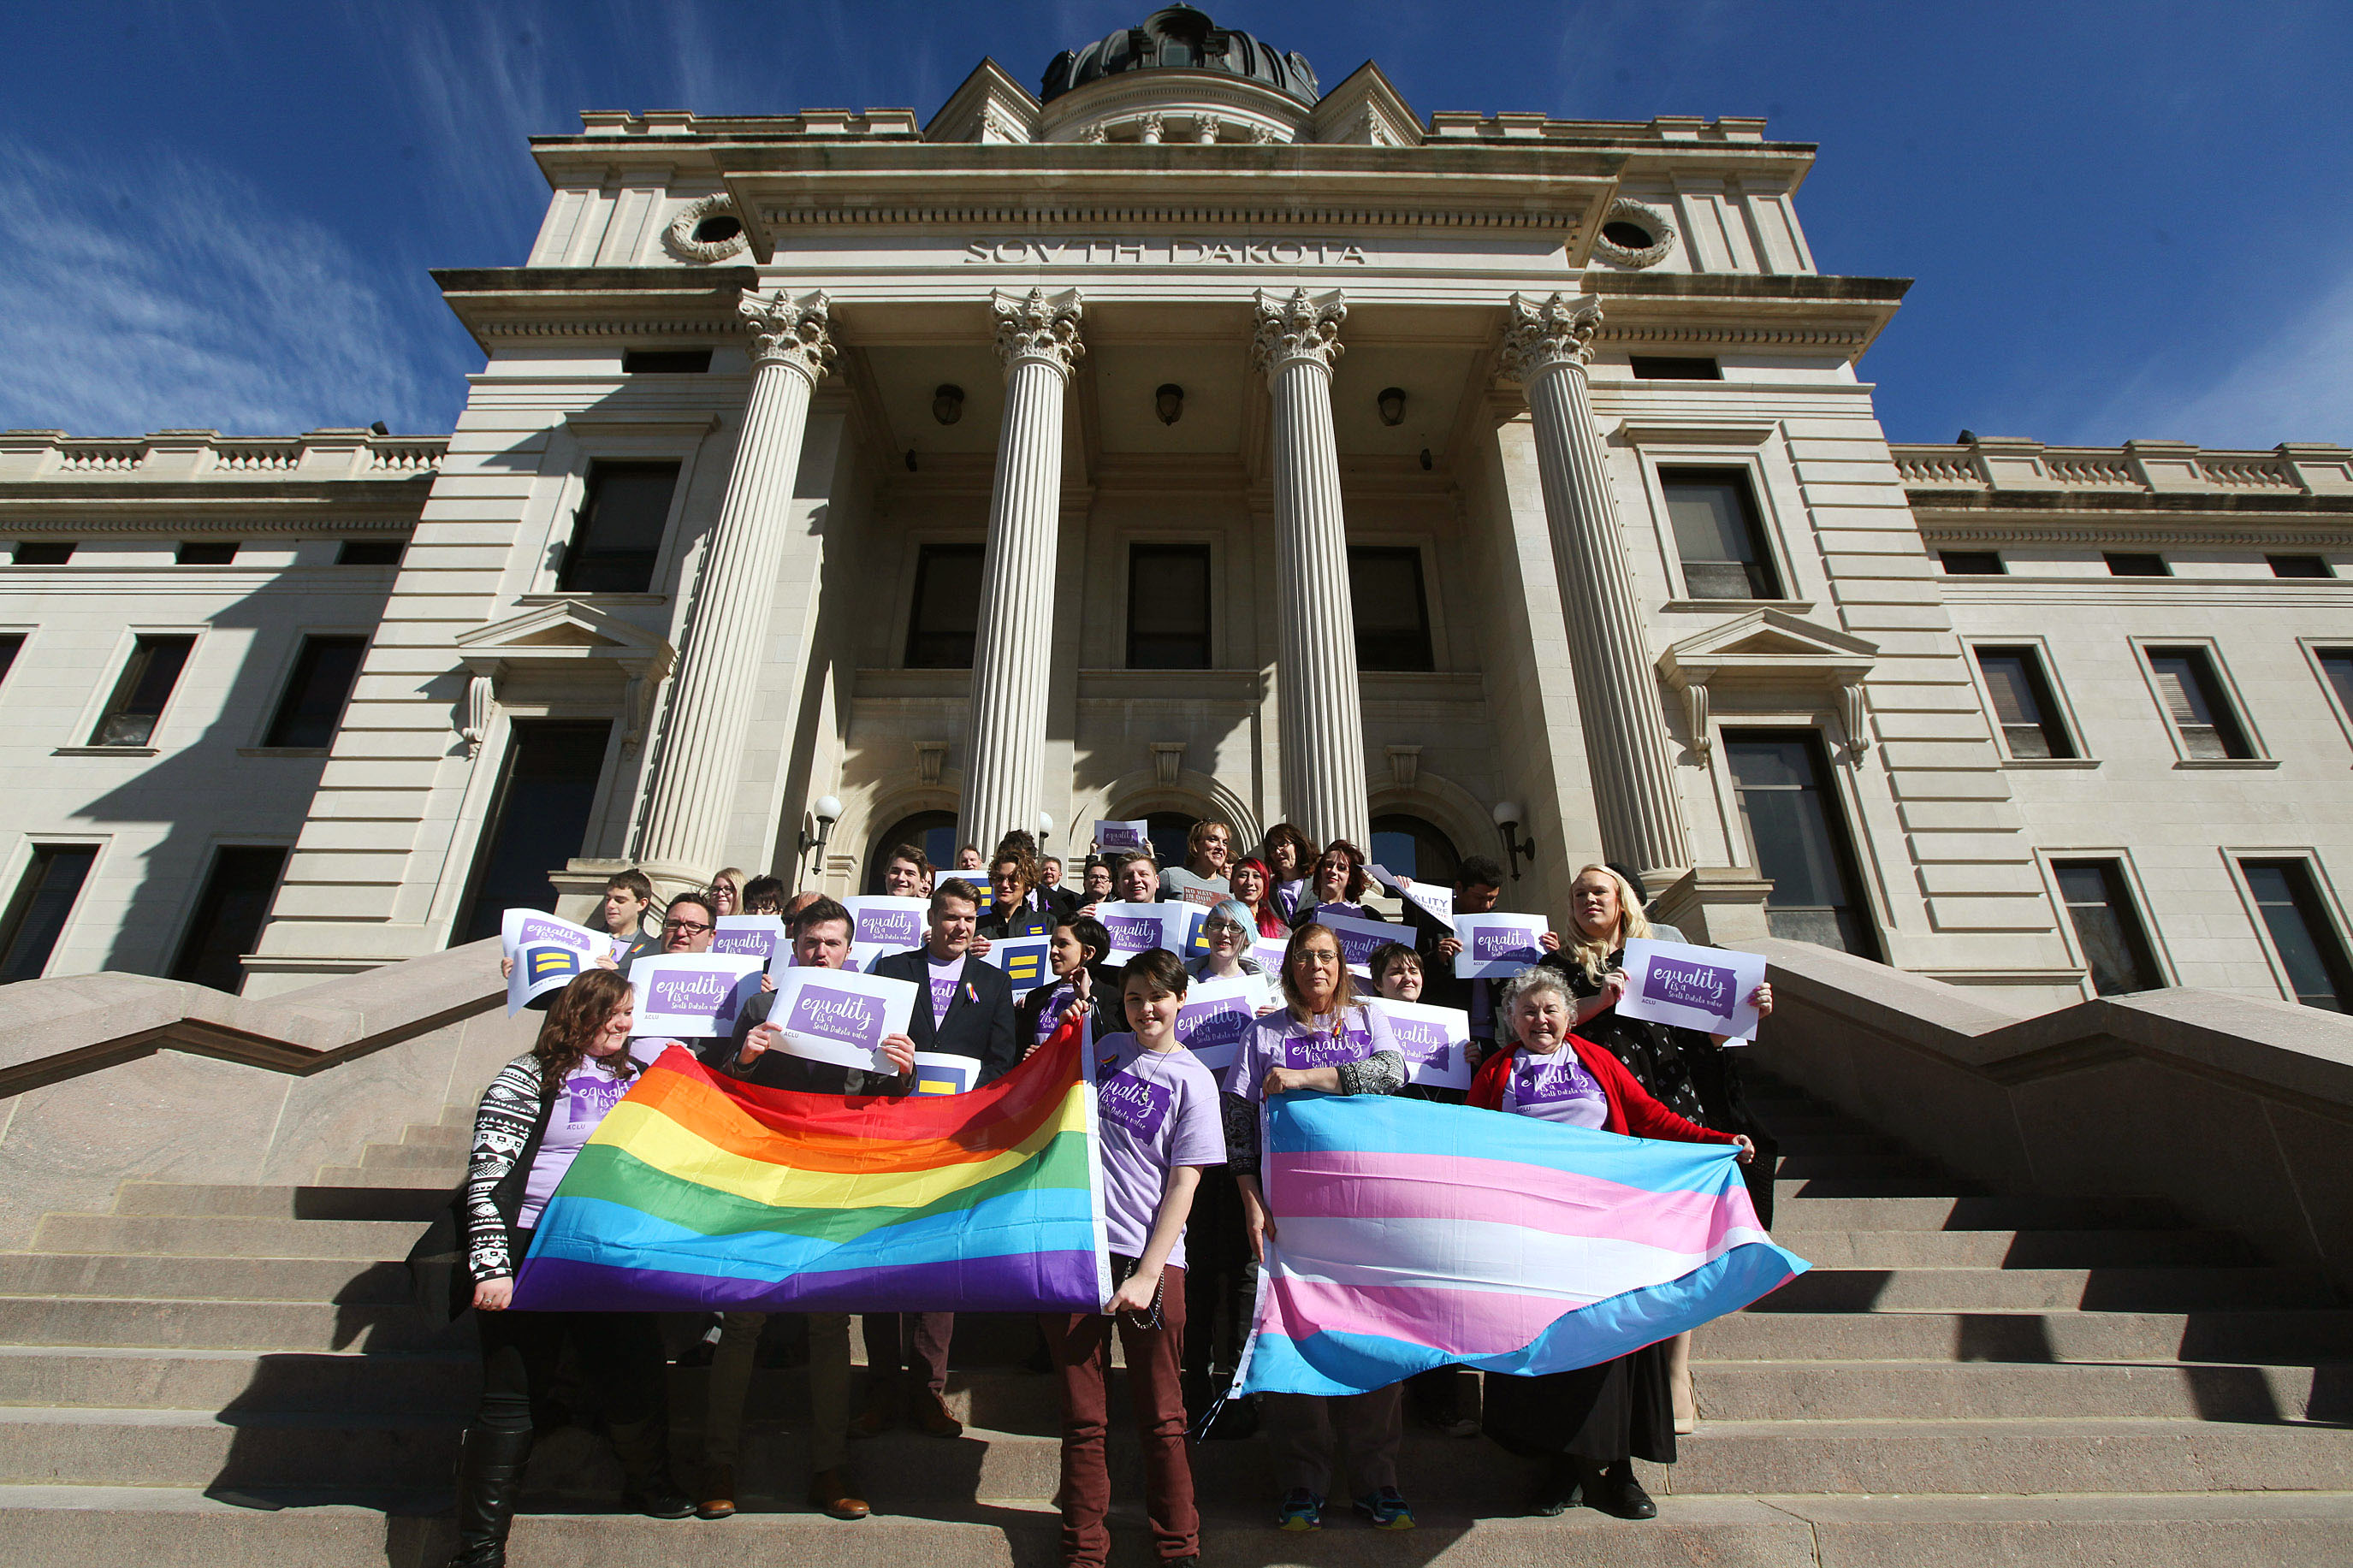 Representatives from the Center for Equality, American Civil Liberties Union of South Dakota, LGBT supporters and members of the Human Rights Campaign stand on the front steps of the State Capitol, on Feb. 23, 2016.